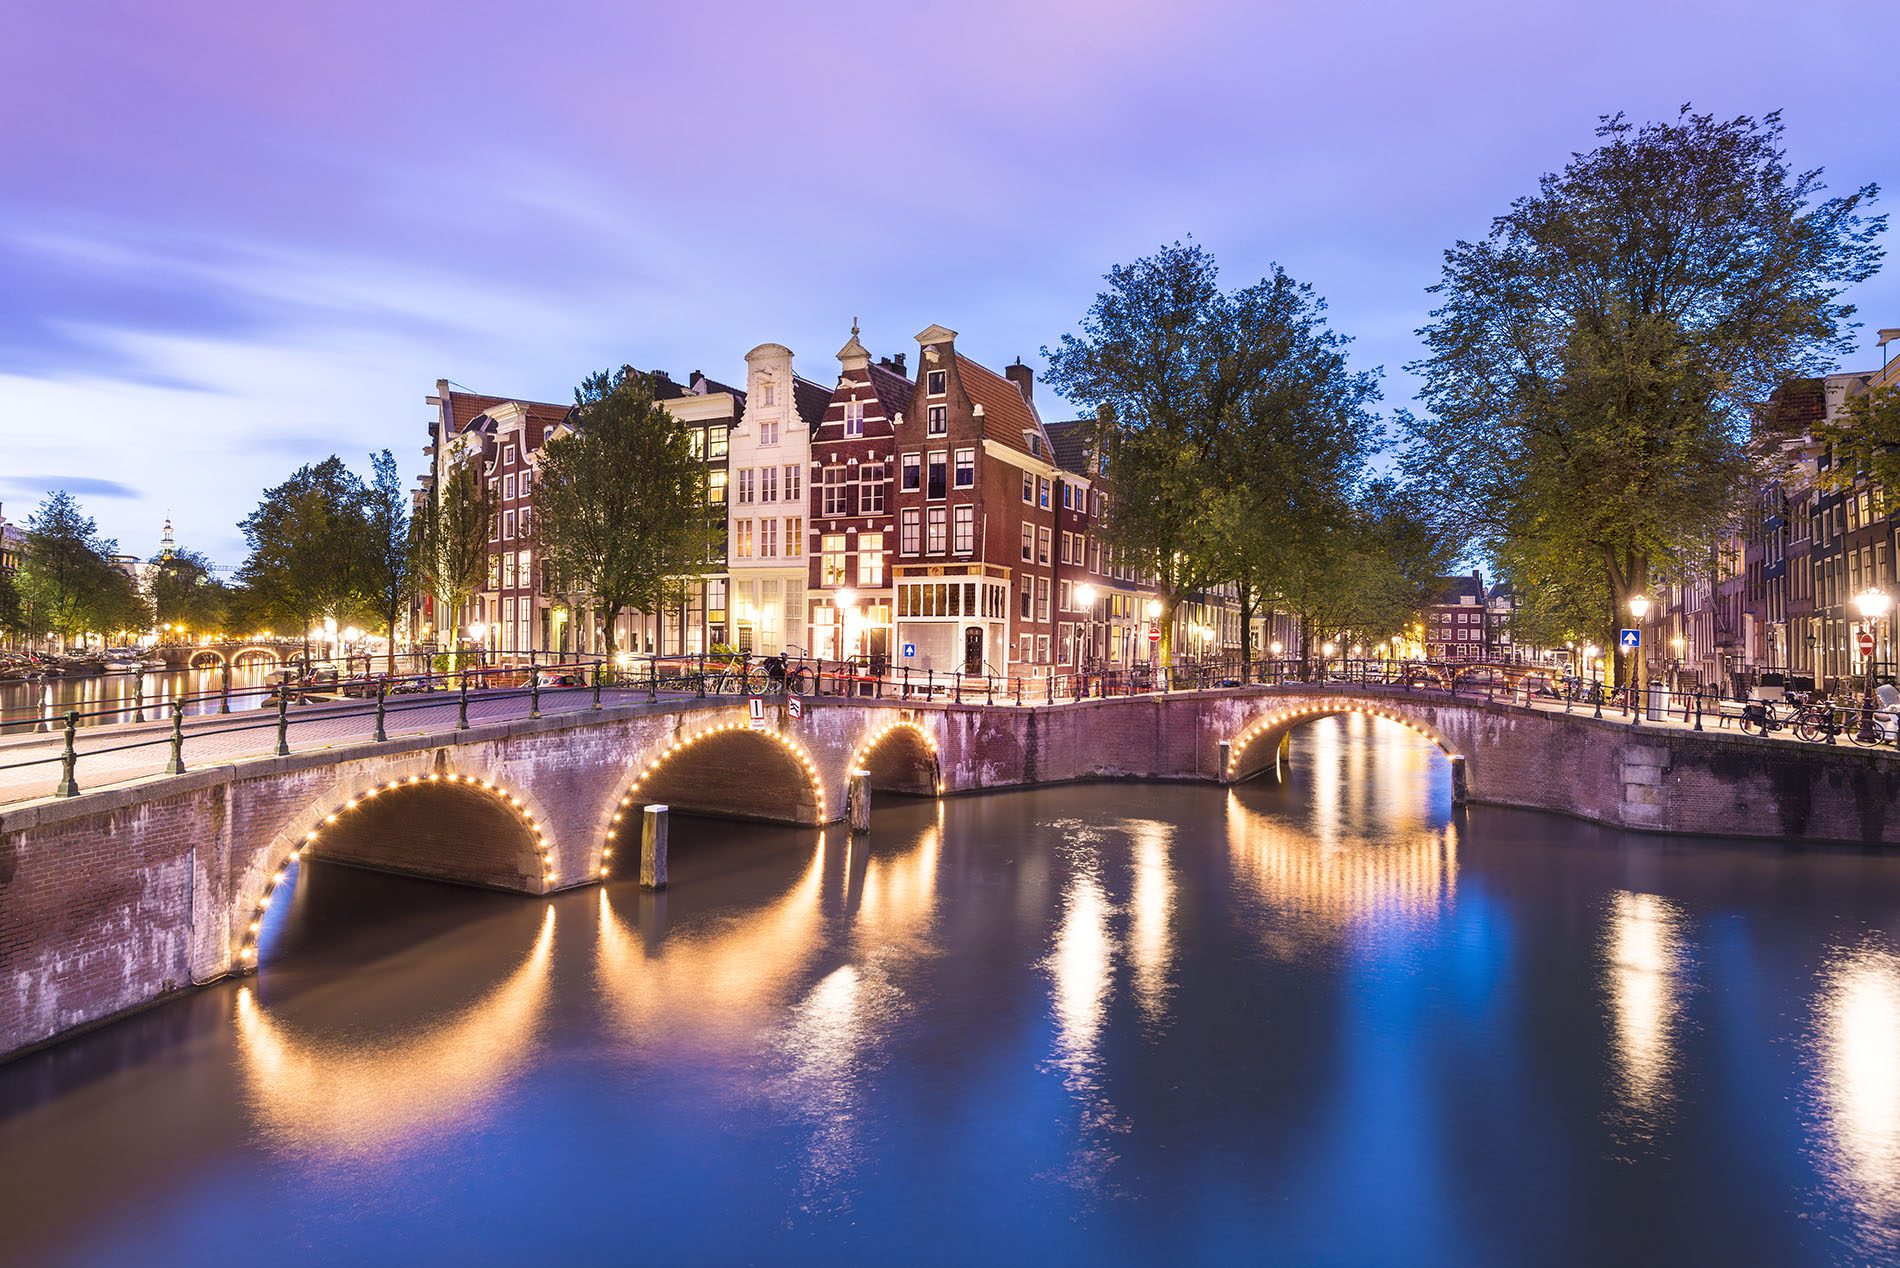 Bridges and canal houses line the canal in Amsterdam at twilight, Holland.